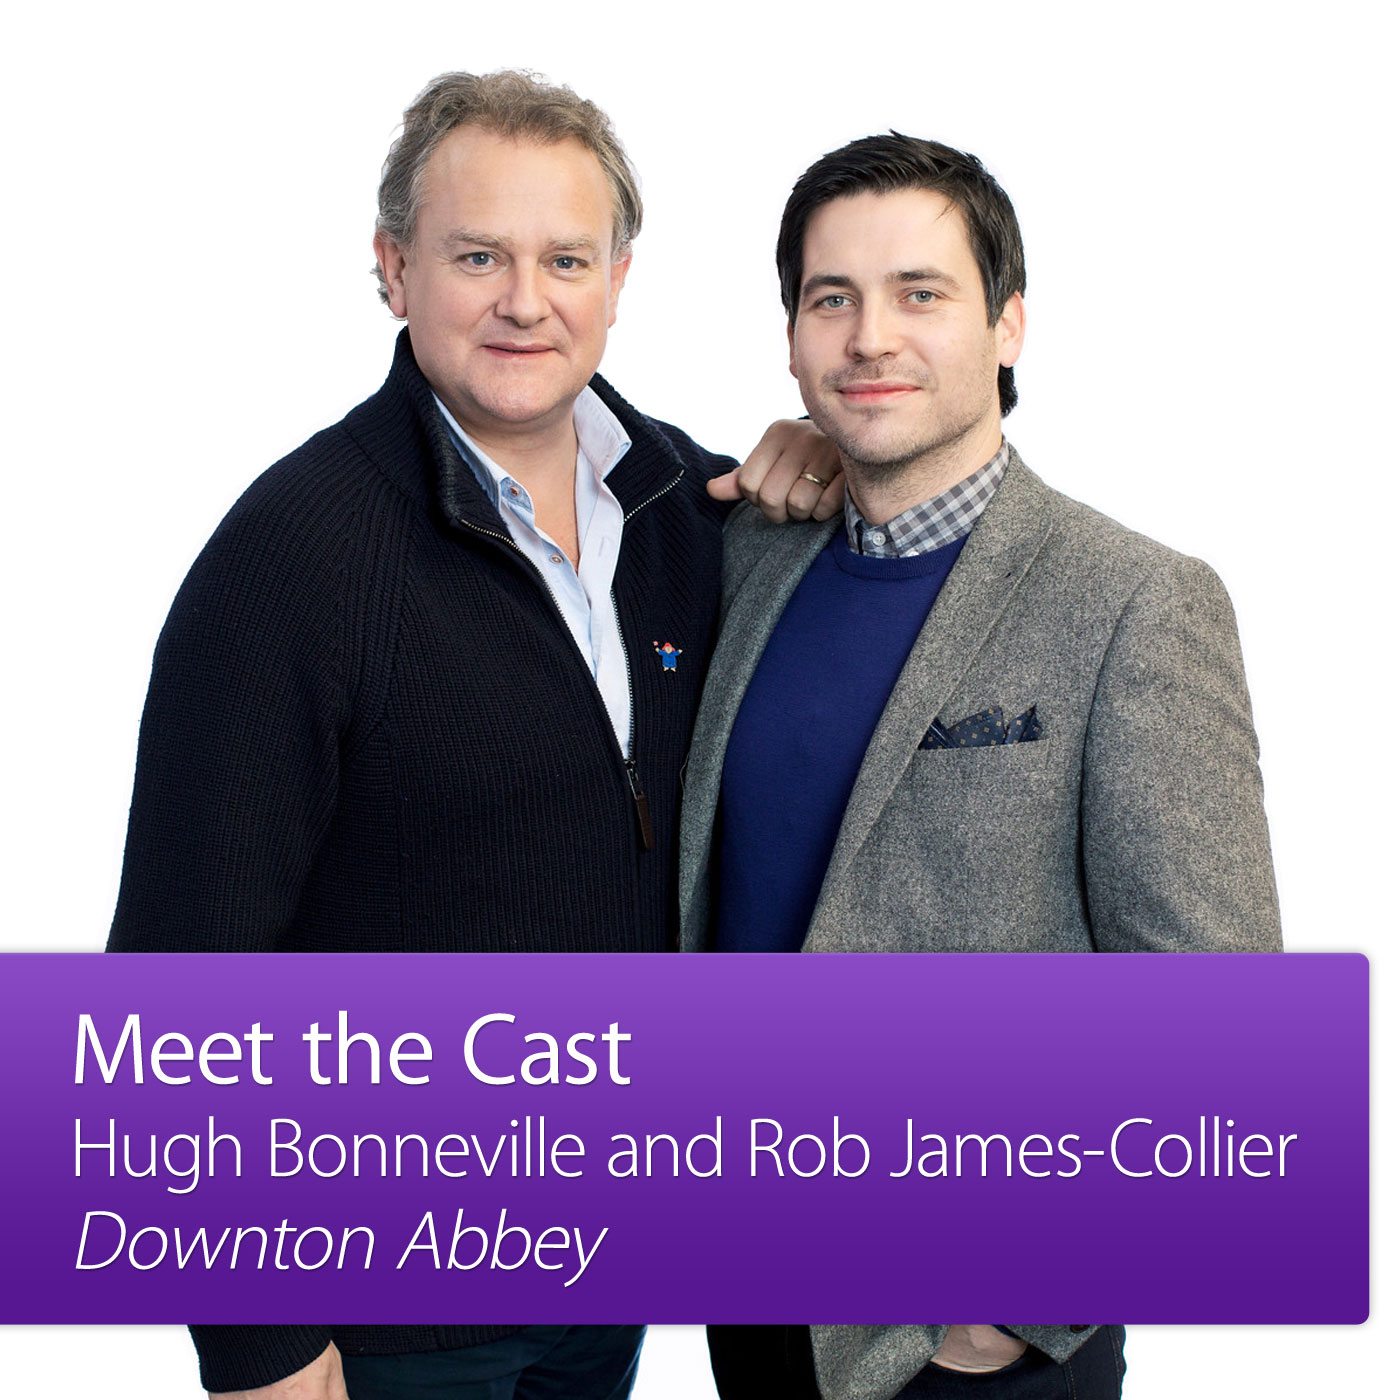 Hugh Bonneville and Rob James-Collier: Meet the Cast